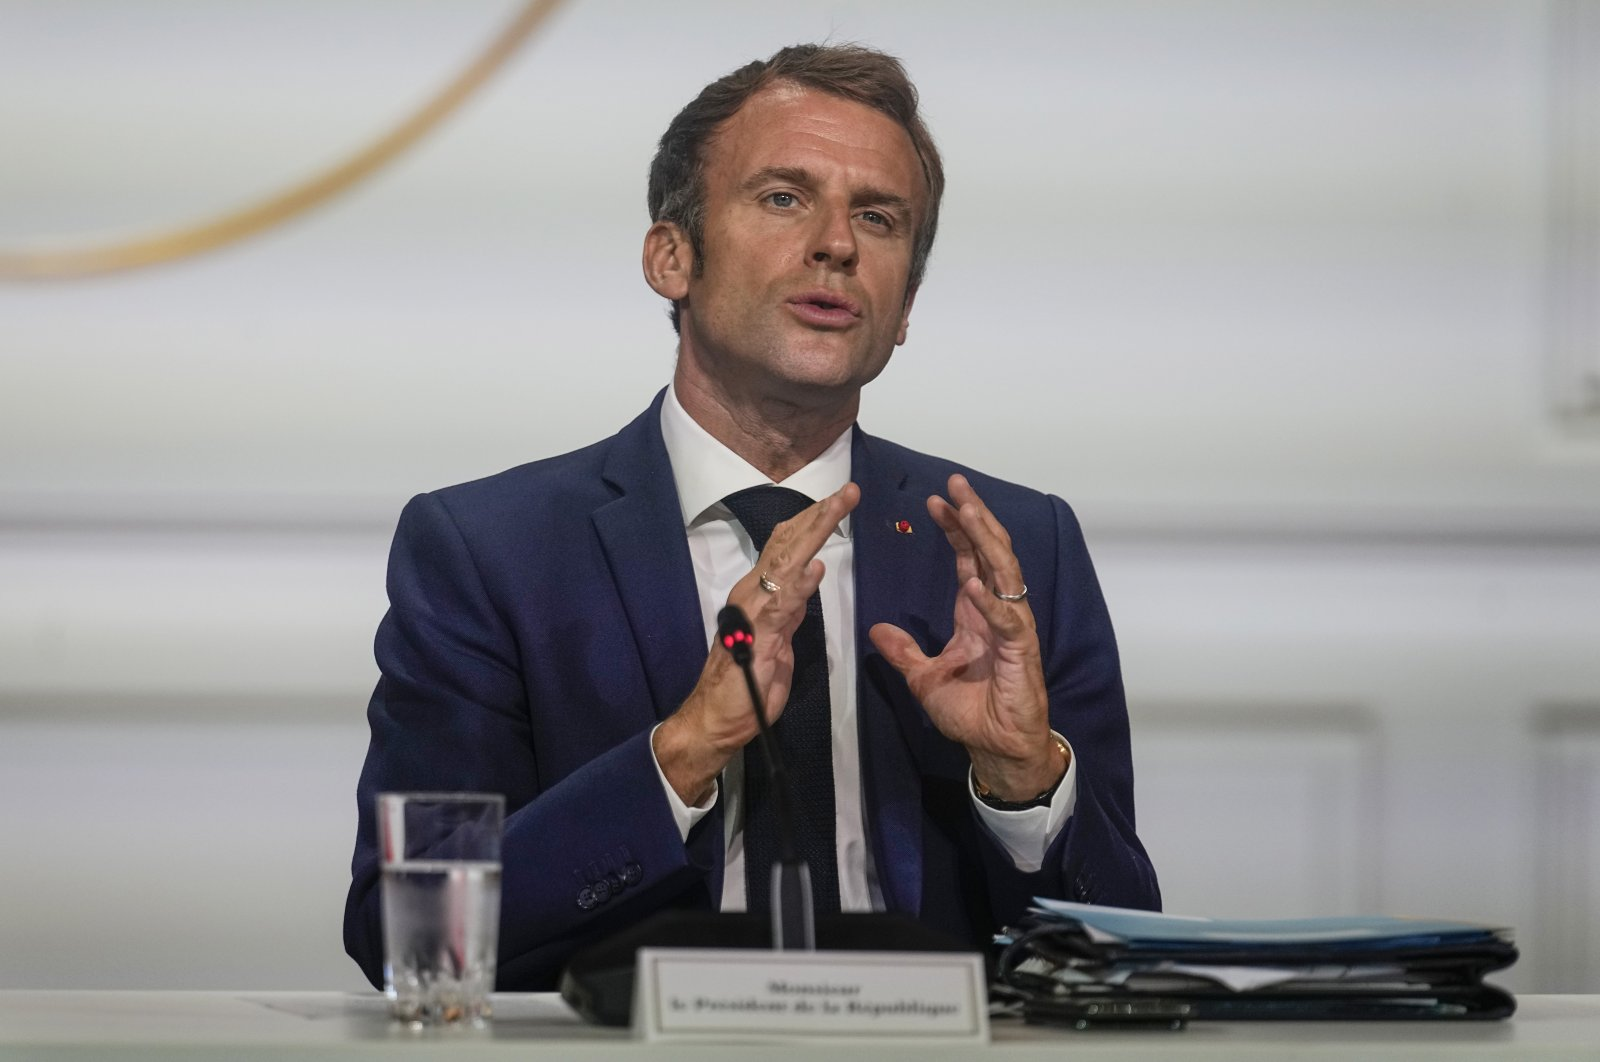 French President Emmanuel Macron gestures as he speaks during the One Planet Summit at the Elysee Palace in Paris, France, Oct. 4, 2021. (AP Photo)